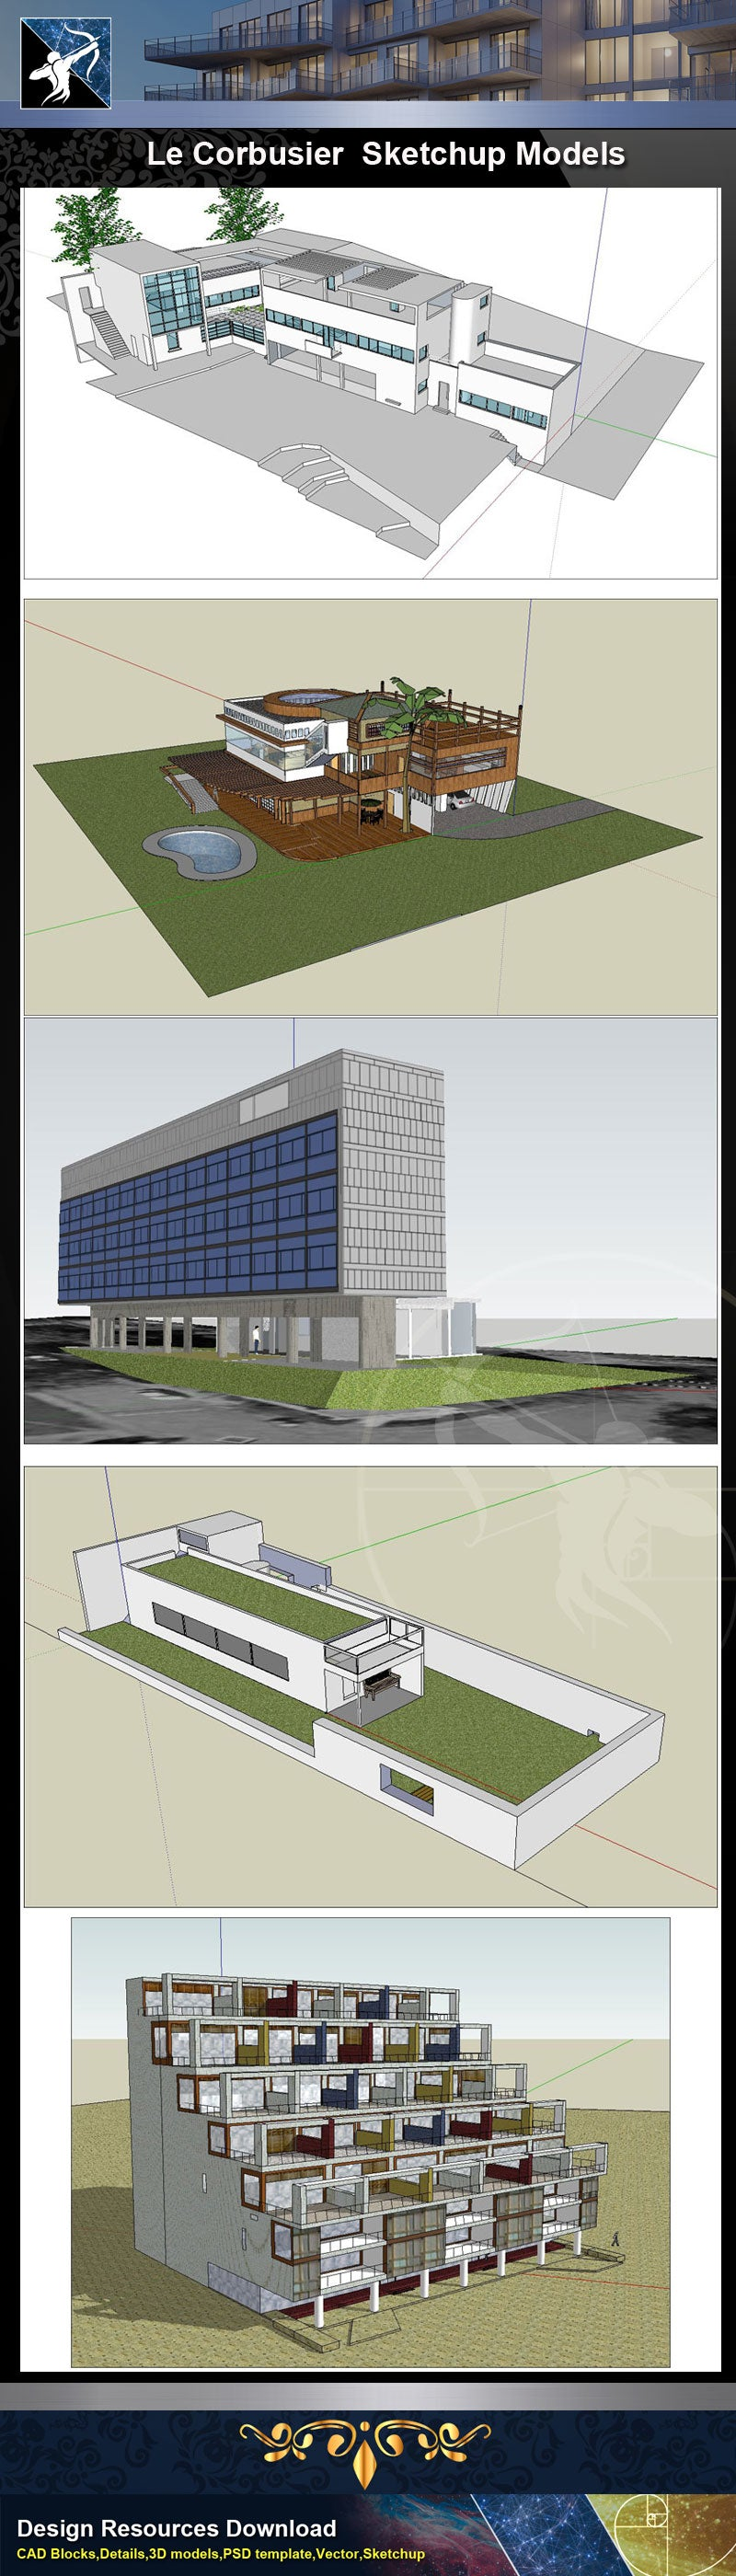 ★Famous Architecture -24 Kinds of Le Corbusier Sketchup 3D Models